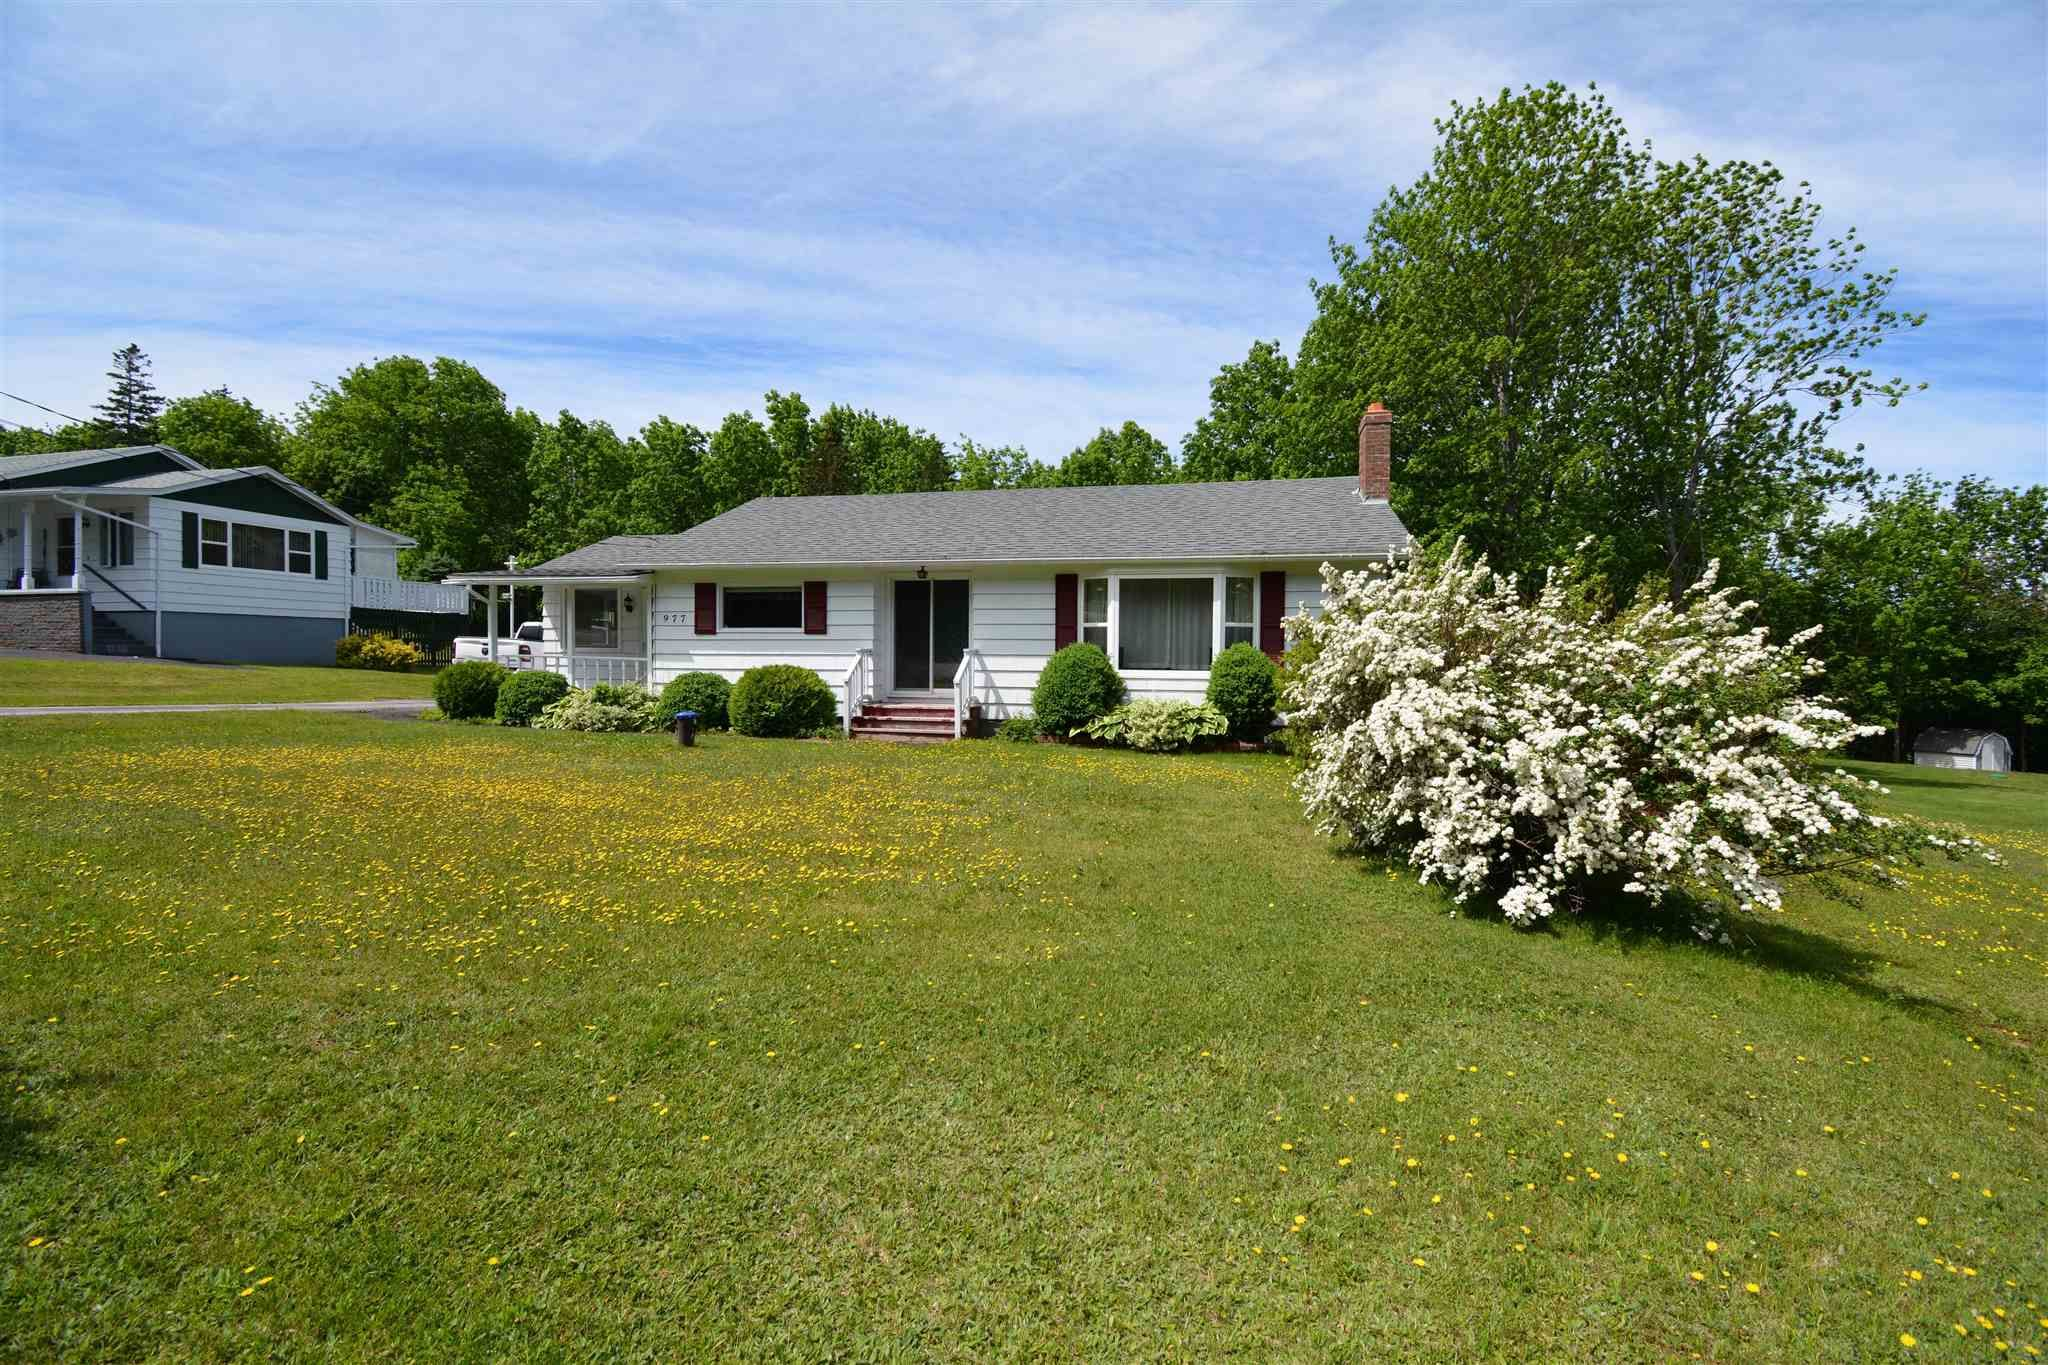 Main Photo: 977 PARKER MOUNTAIN Road in Parkers Cove: 400-Annapolis County Residential for sale (Annapolis Valley)  : MLS®# 202115234